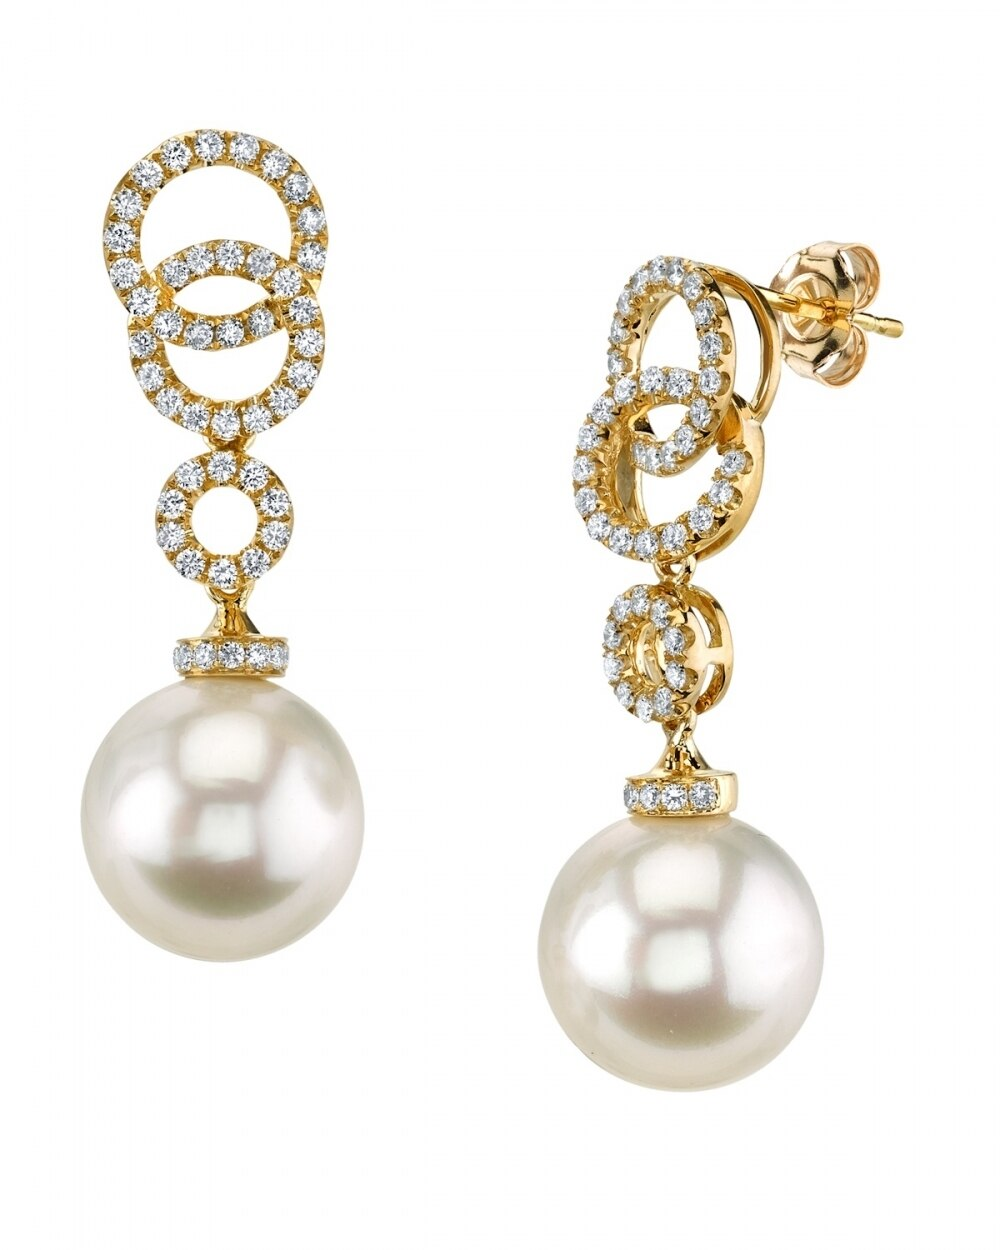 Exquisite earrings feature two 10.0-11.0mm  White South Sea pearls, selected for their luminous luster